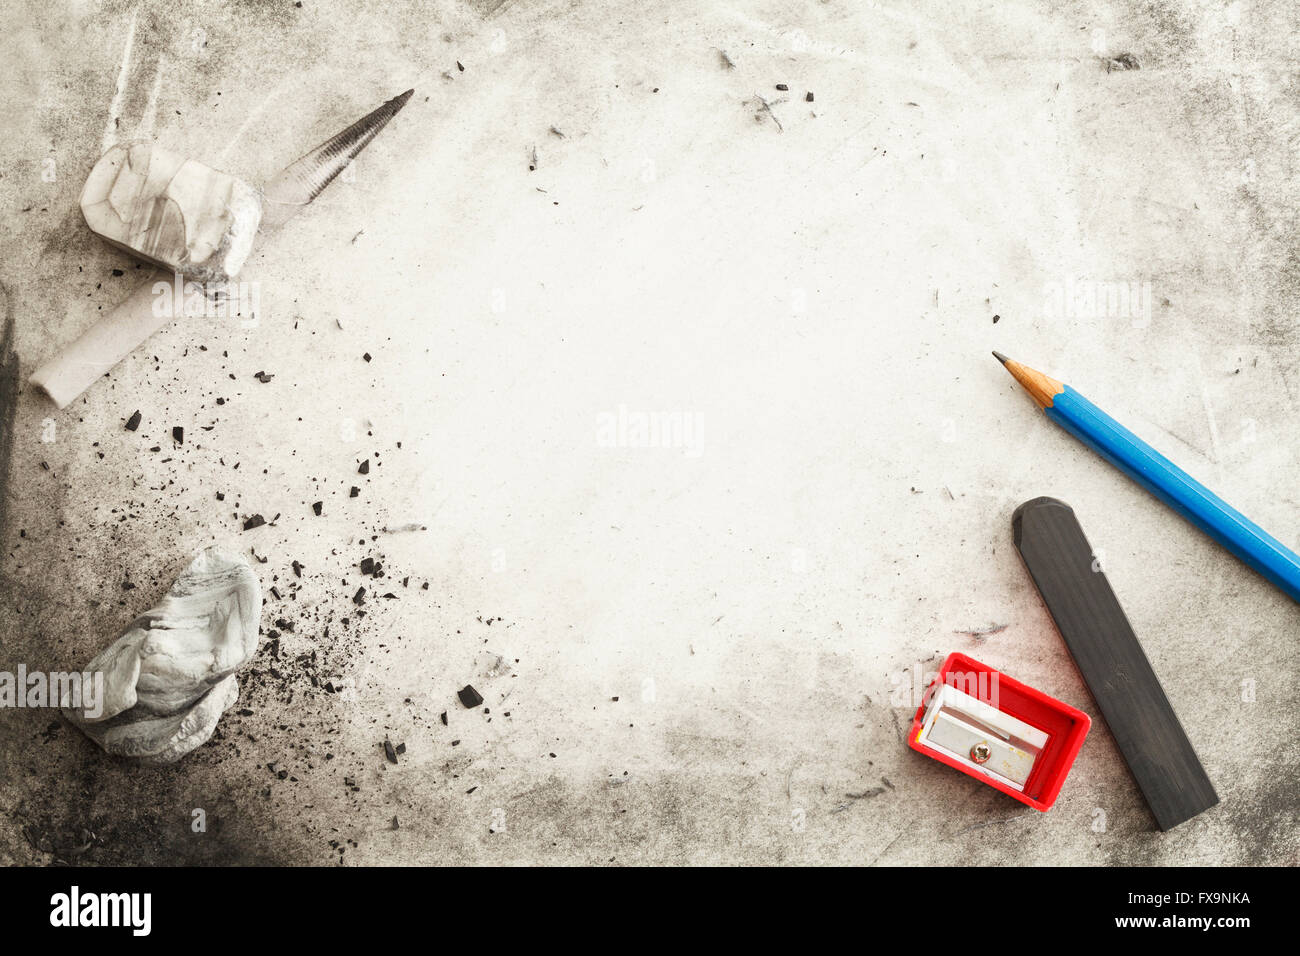 Paper with Pencil, Eraser, Charcoal, Smudges, Messy Marks and Copy Space. - Stock Image